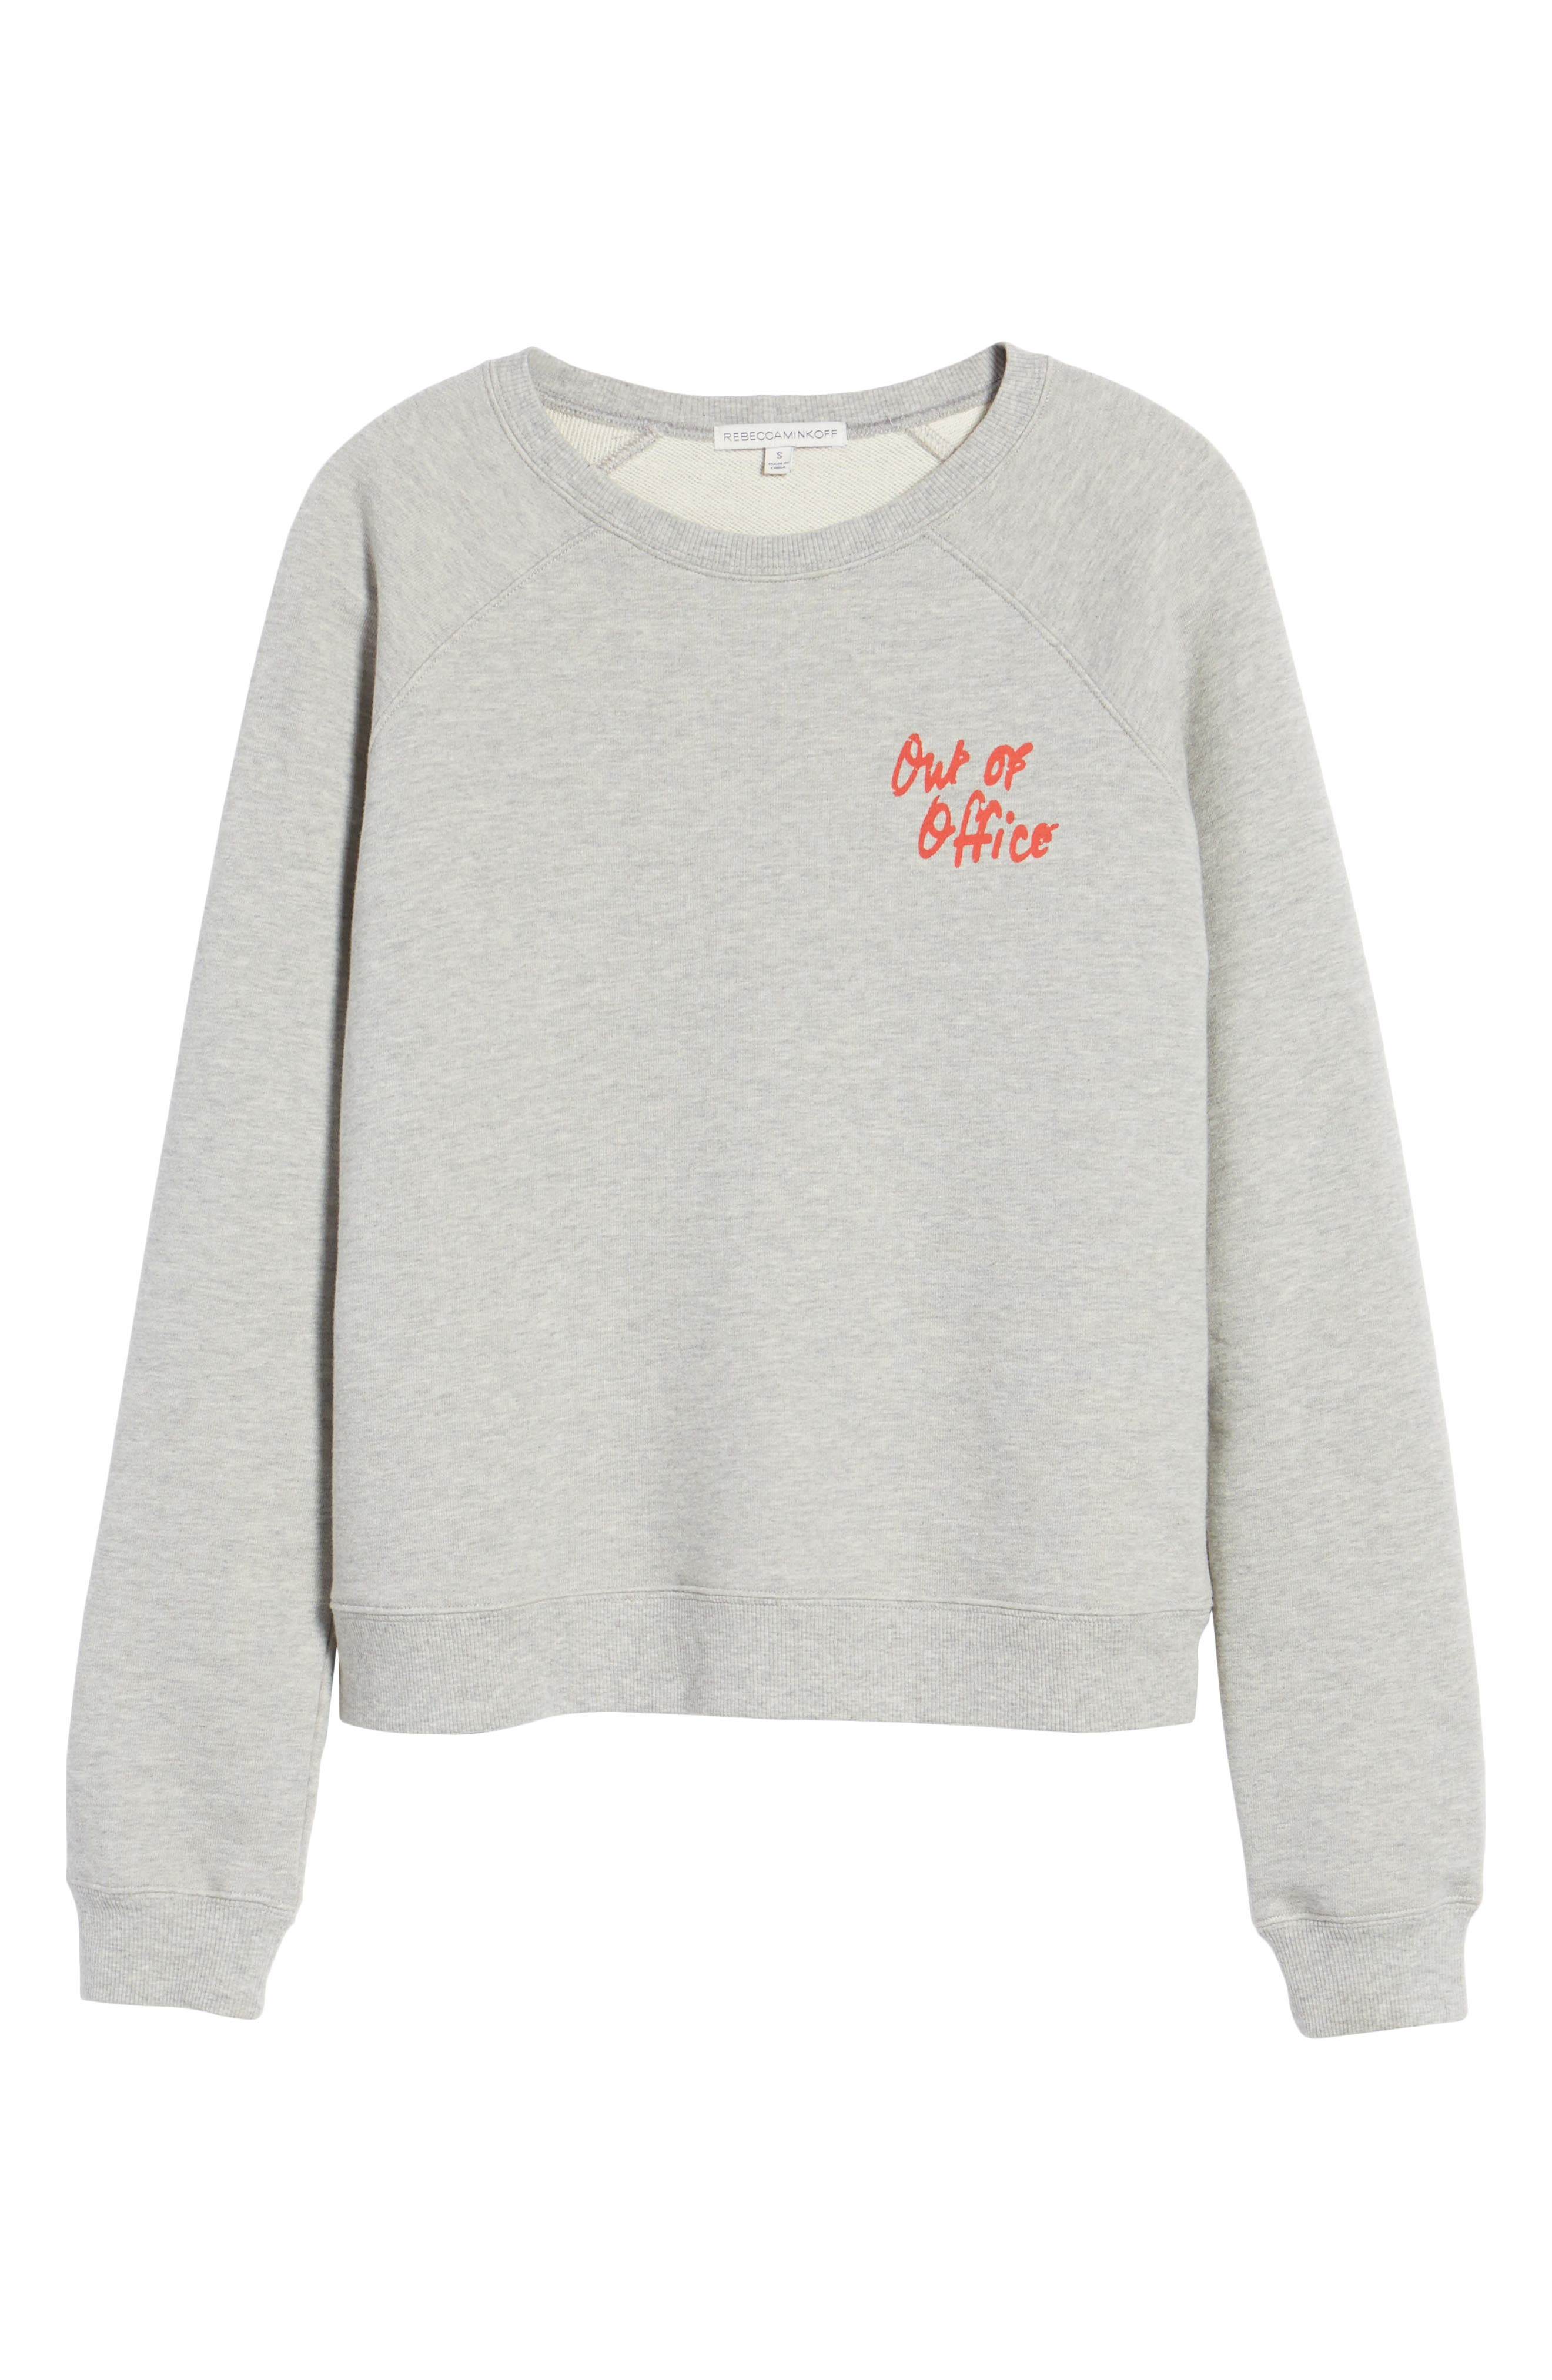 Out of Office Sweatshirt,                             Alternate thumbnail 6, color,